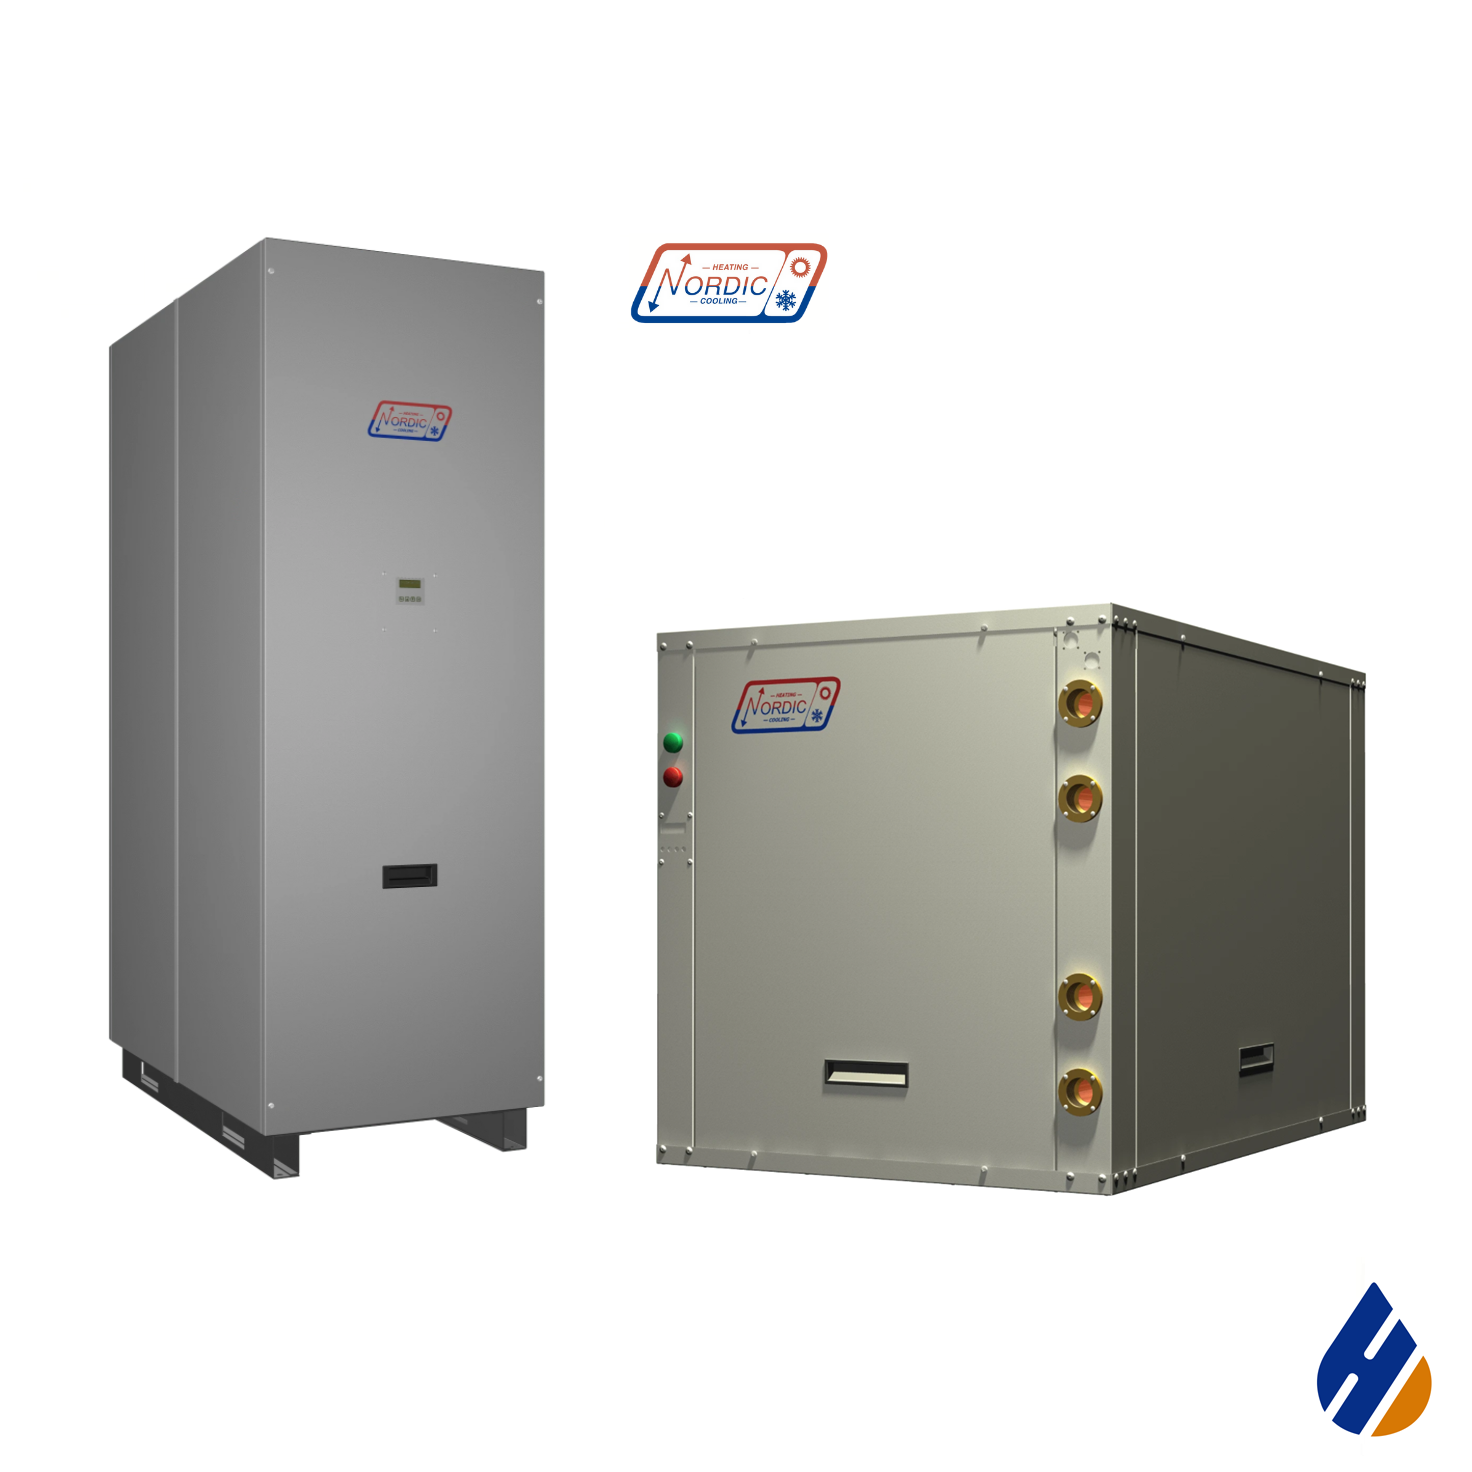 Nordic W Series Commercial liquid-to-water heat pump.